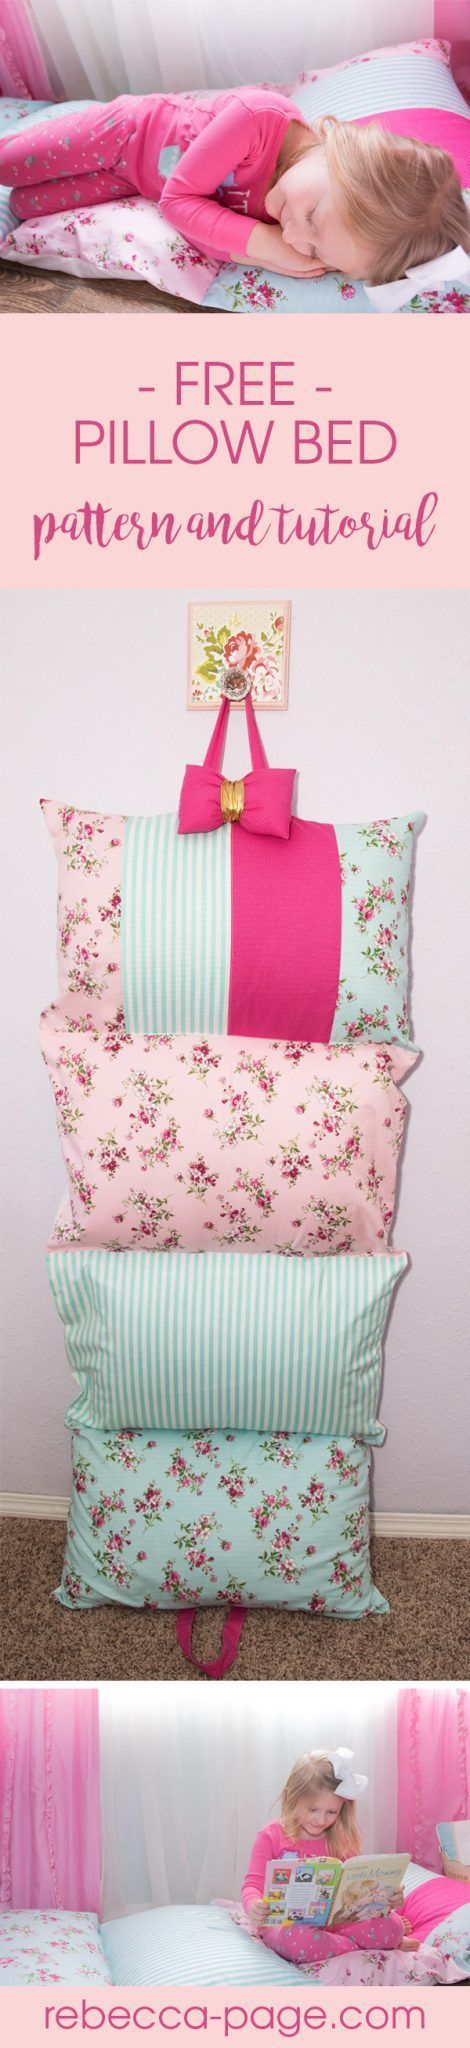 Free Pillow Bed Tutorial - Mummykins and Me by Rebecca Page